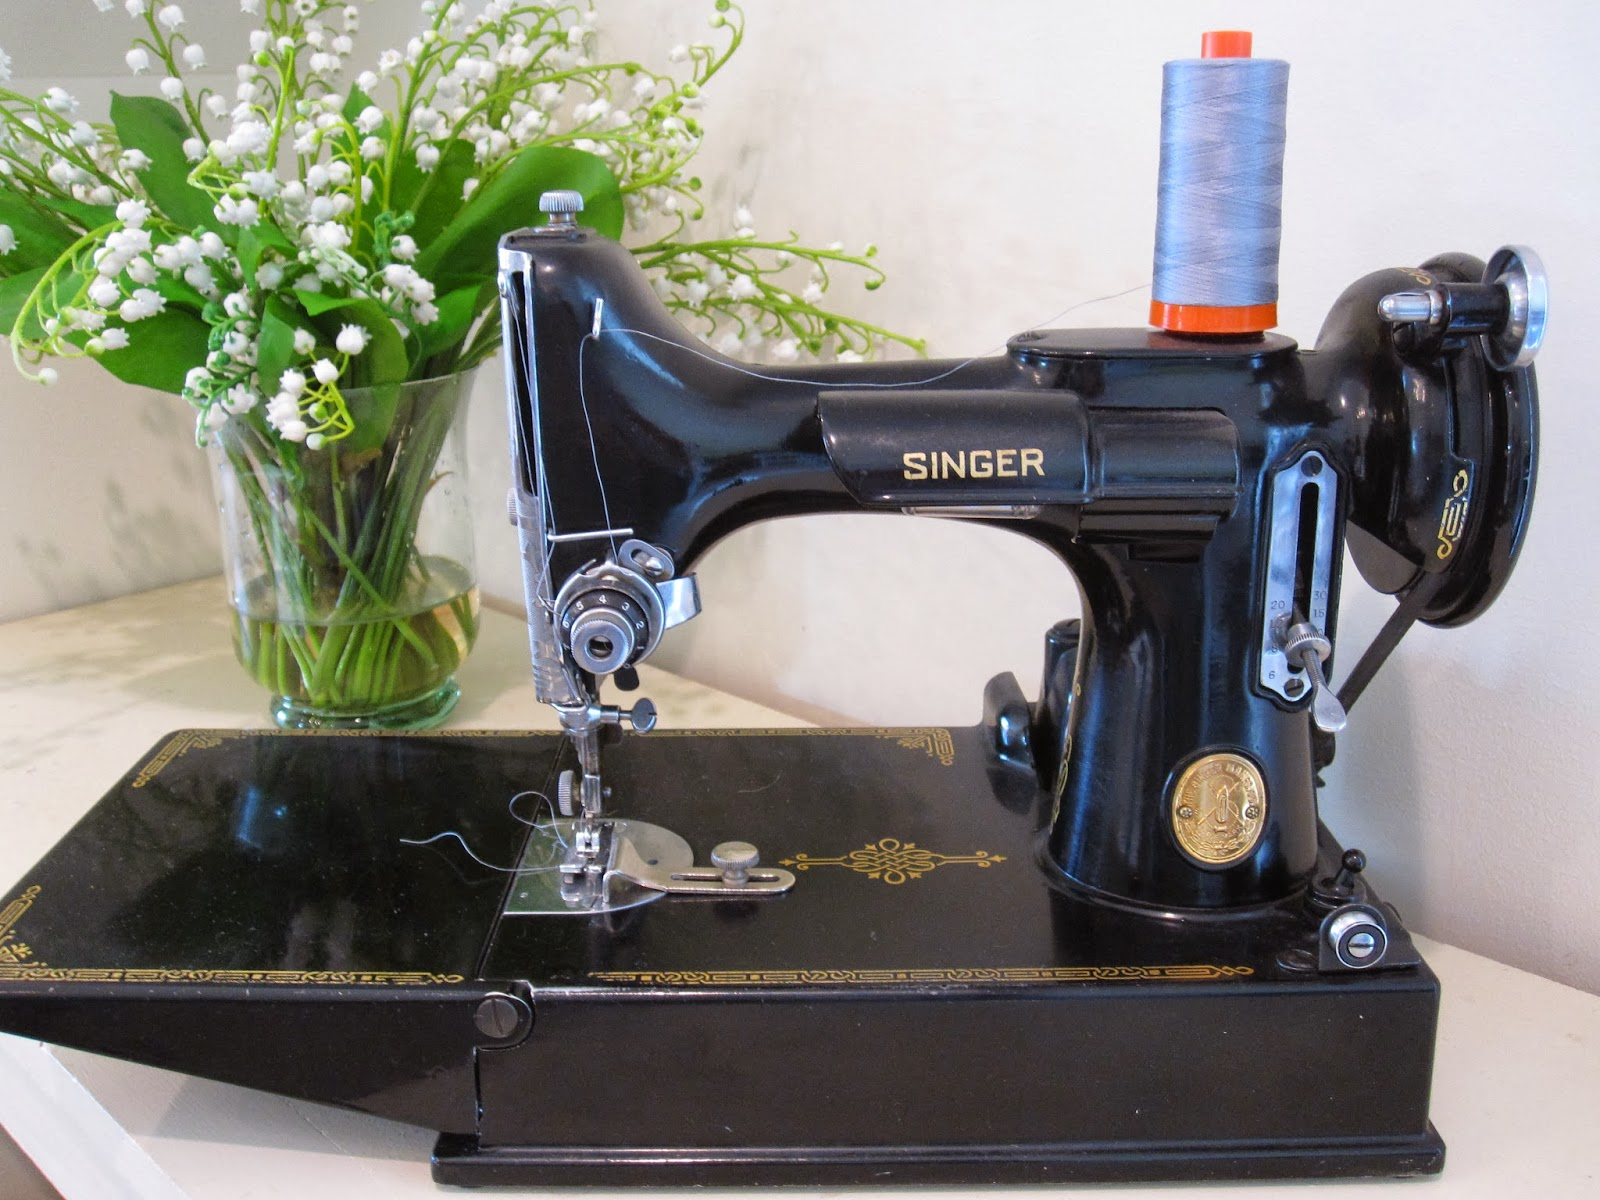 Seam guide for singer featherweight dating